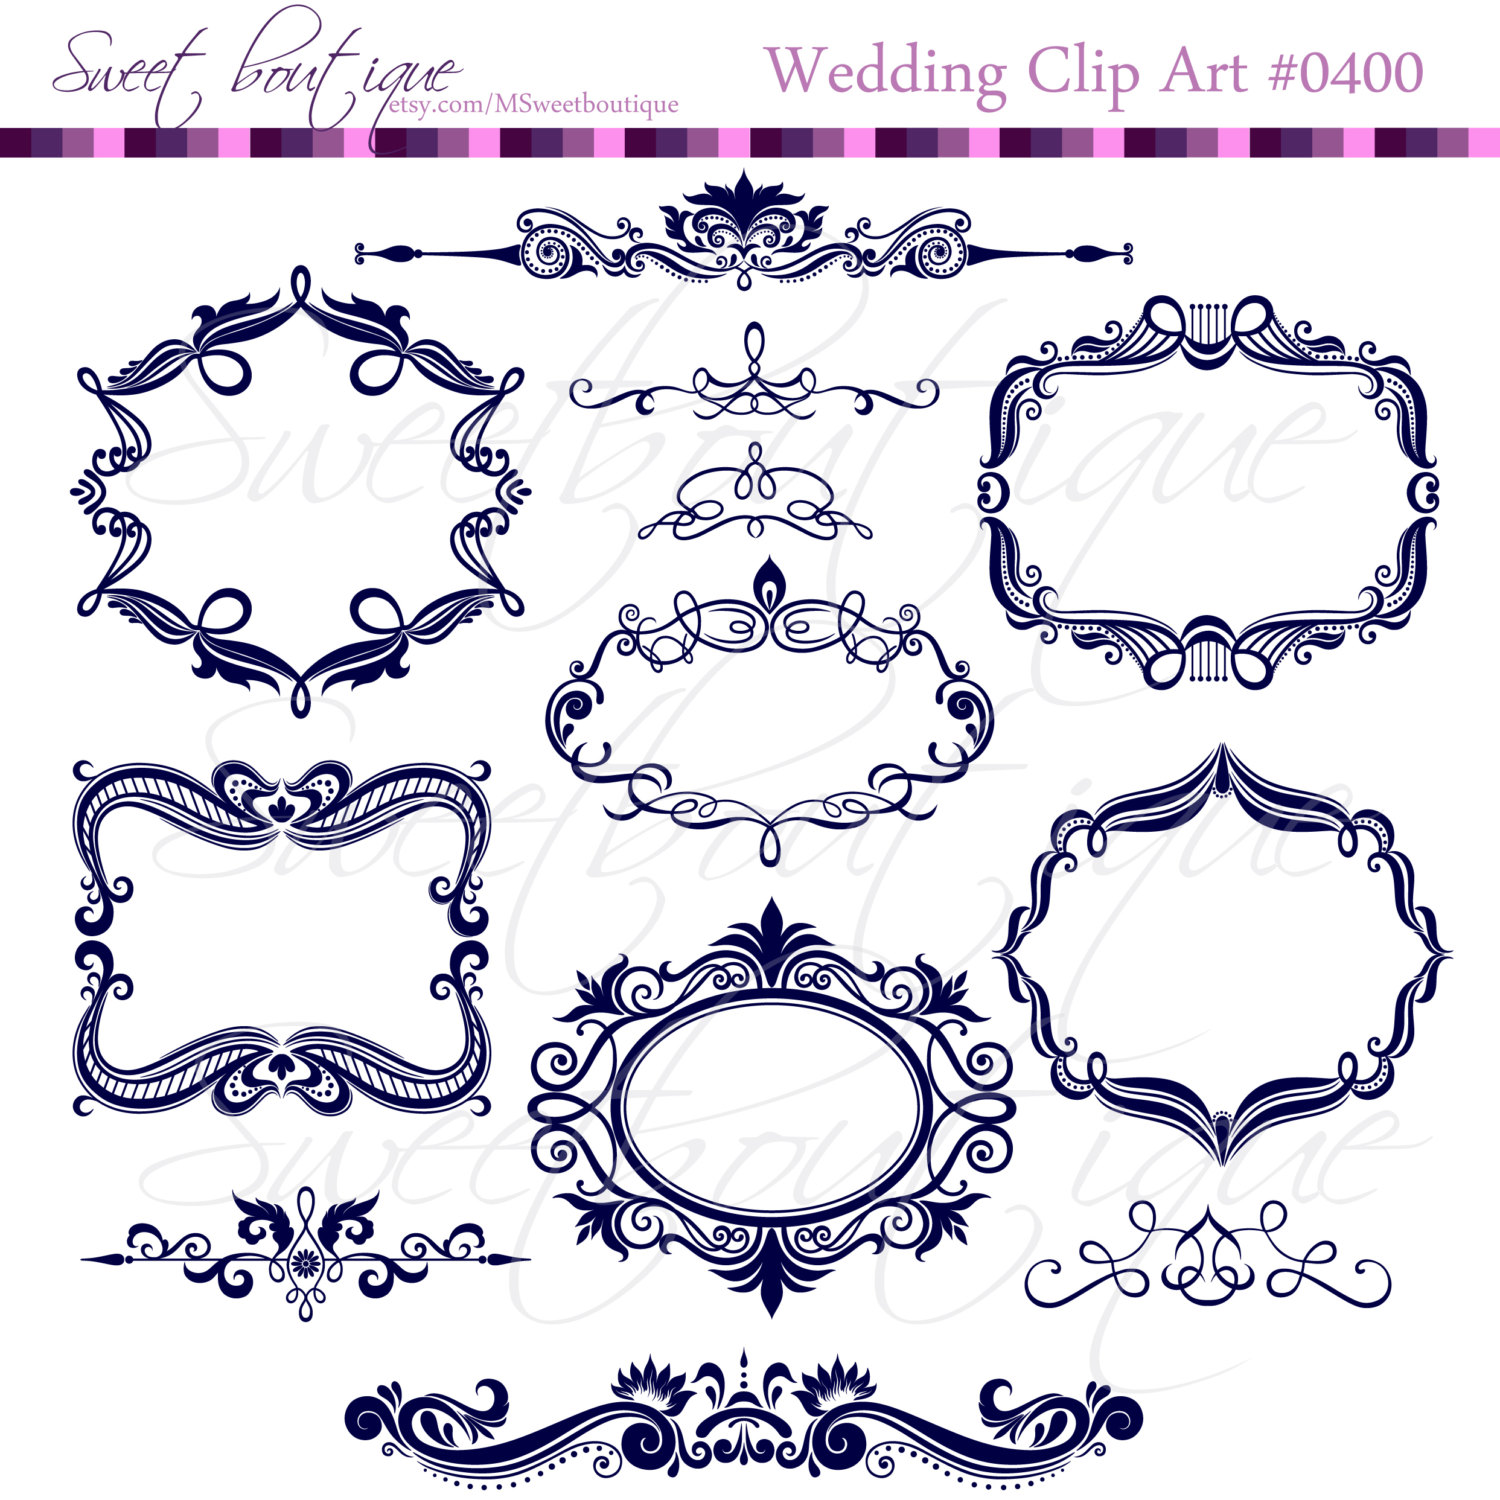 NAVY BLUE Digital Frames Scrapbook Border Clipart Ornate.